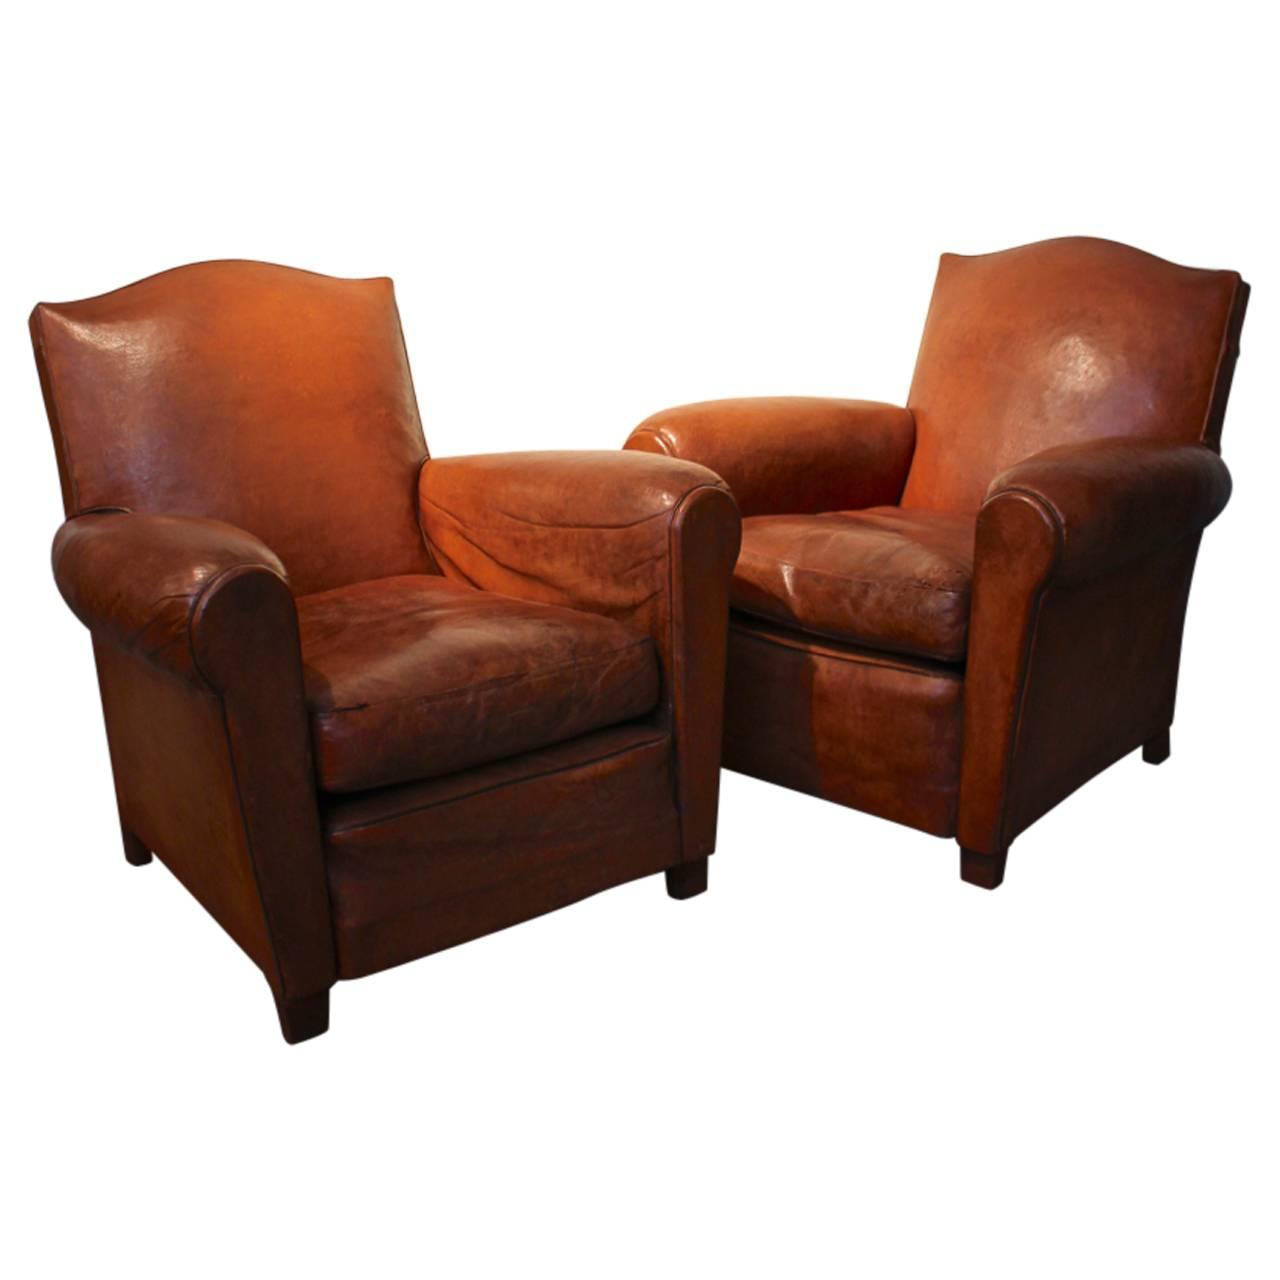 Pair Of Circa 1950s French Leather Club Chairs At 1stdibs